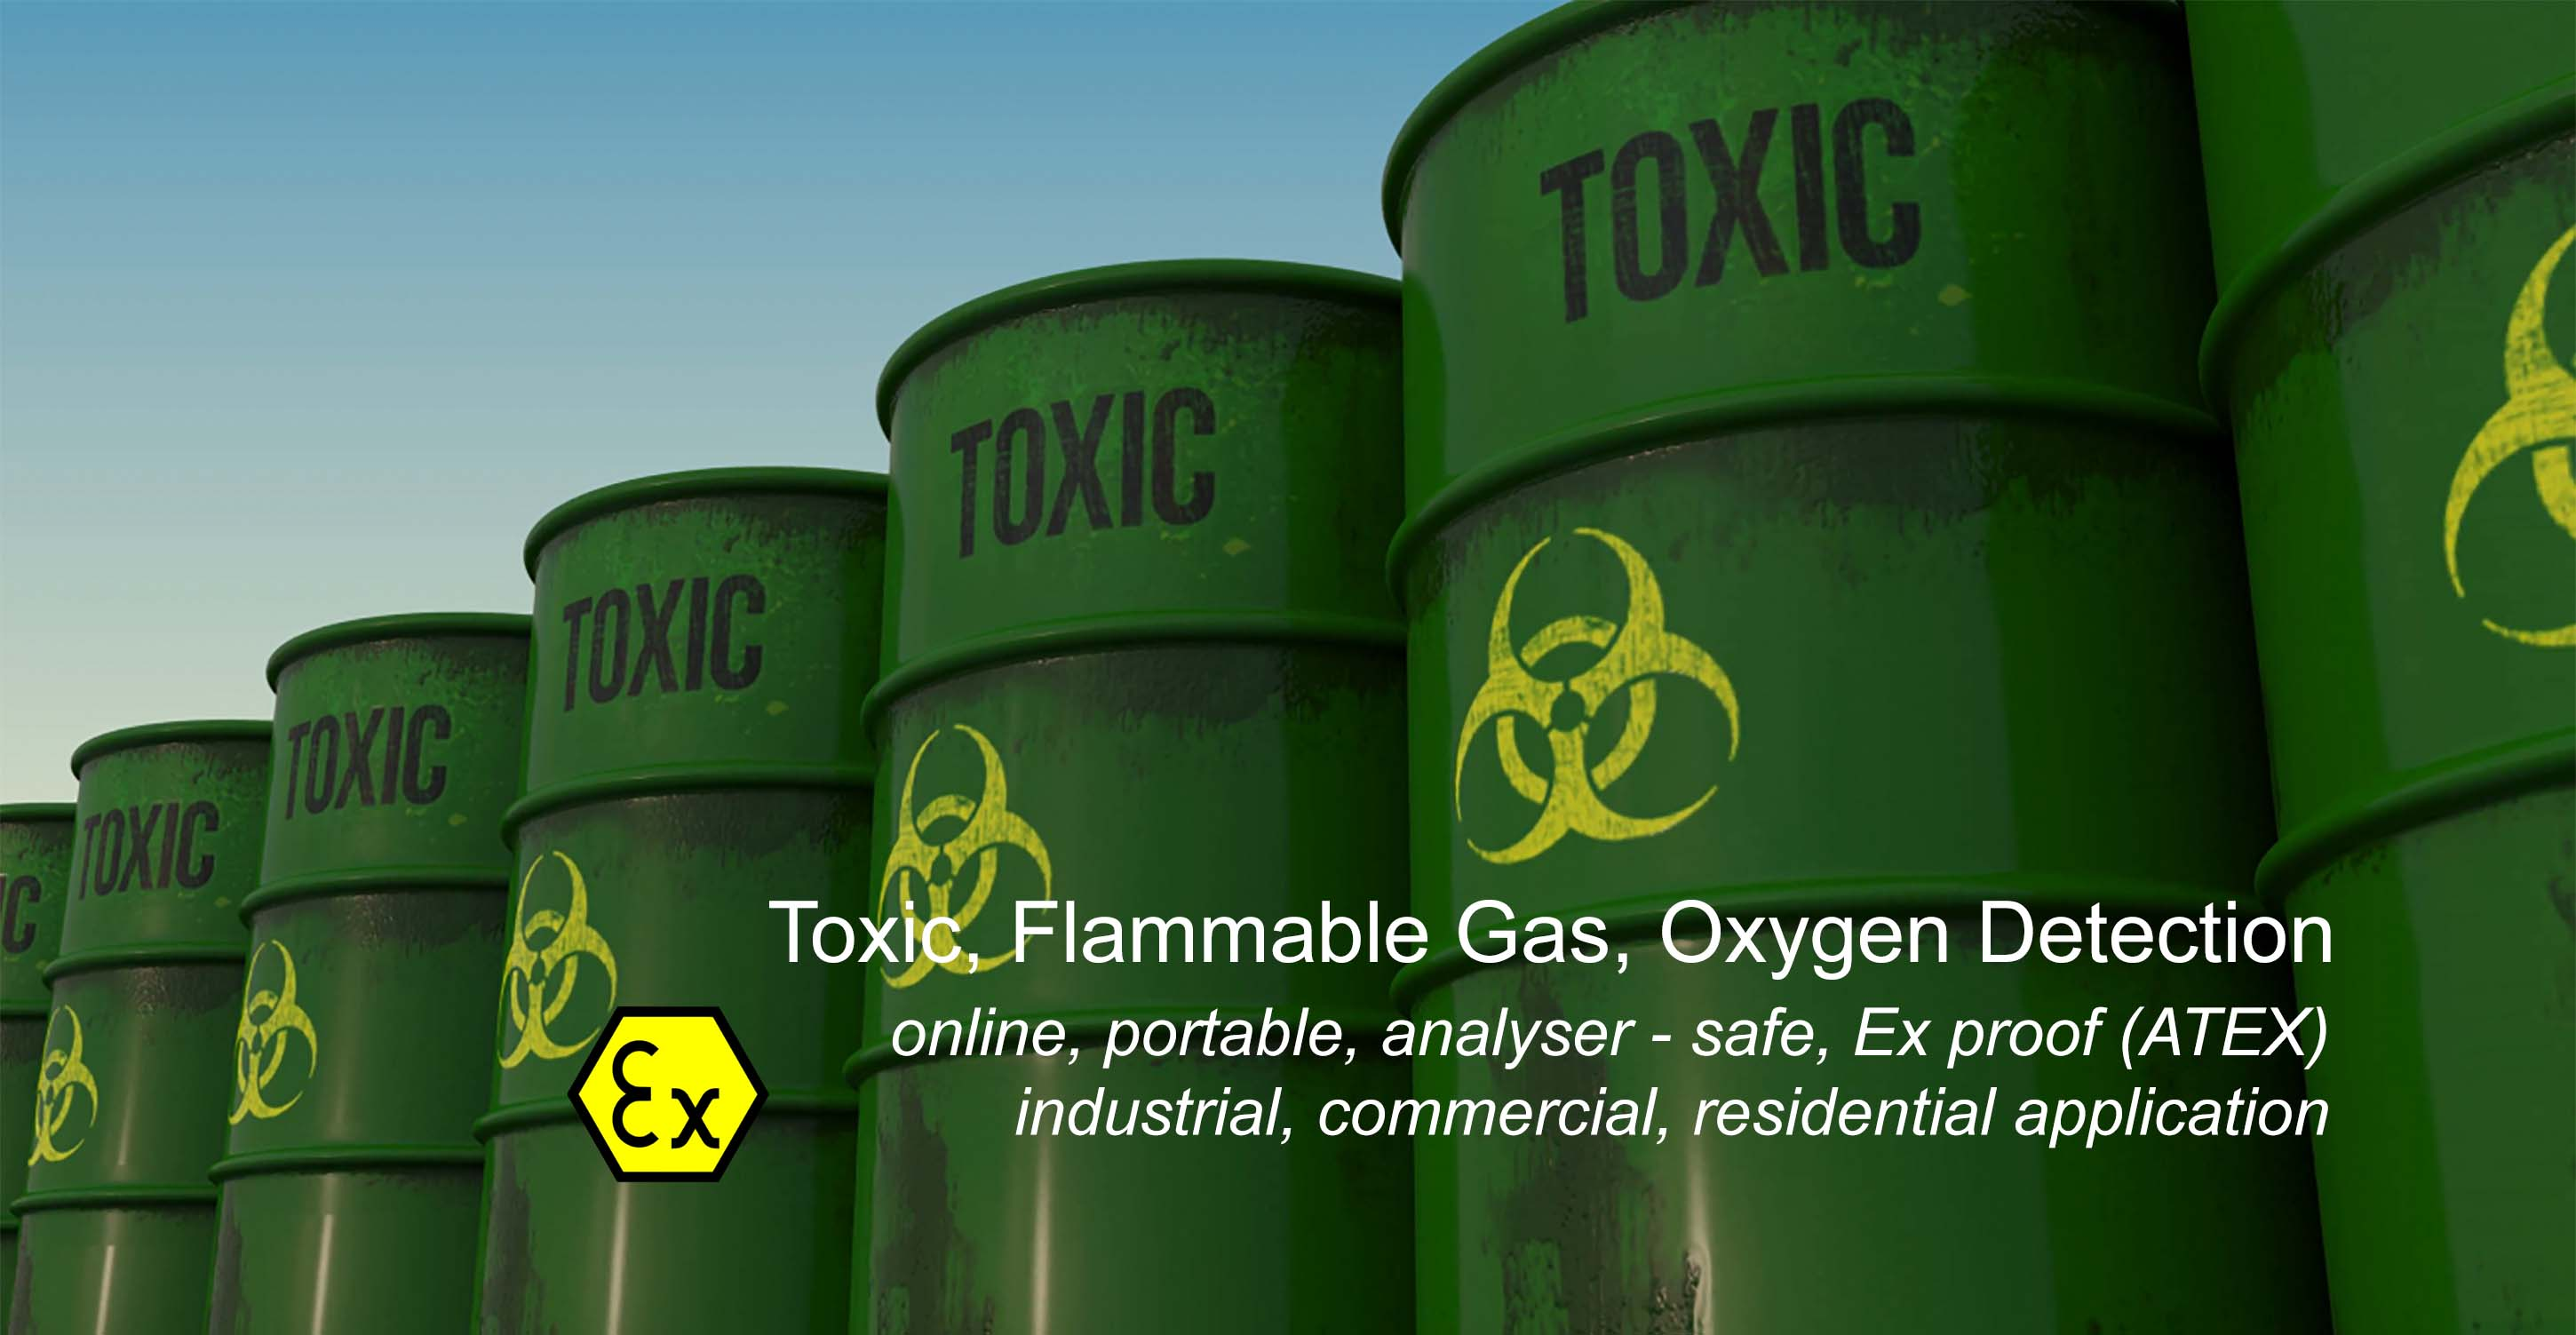 ek-engg-homepage-toxic-flammable-gas-detection